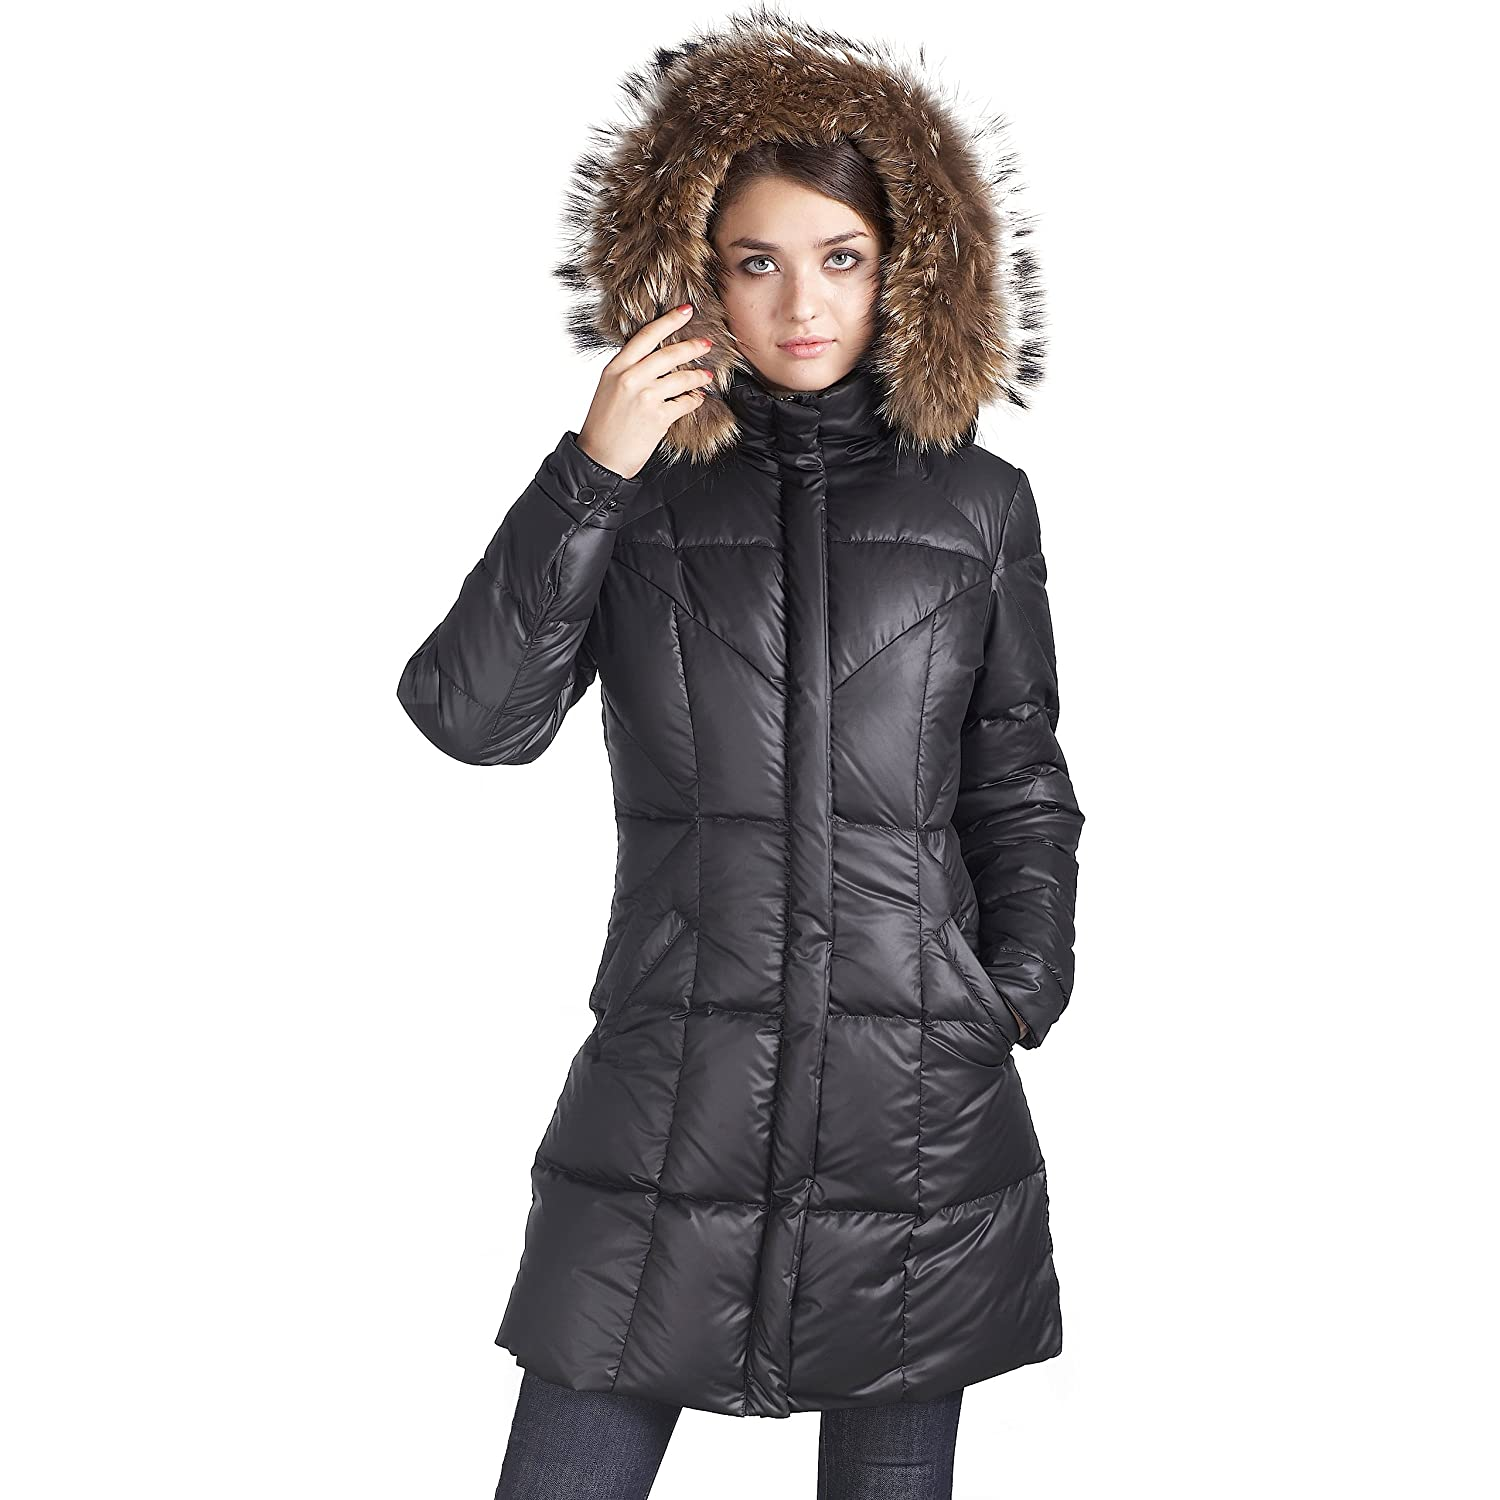 Jessie G. Women's Down Parka Coat with Raccoon Fur Trim – Black M